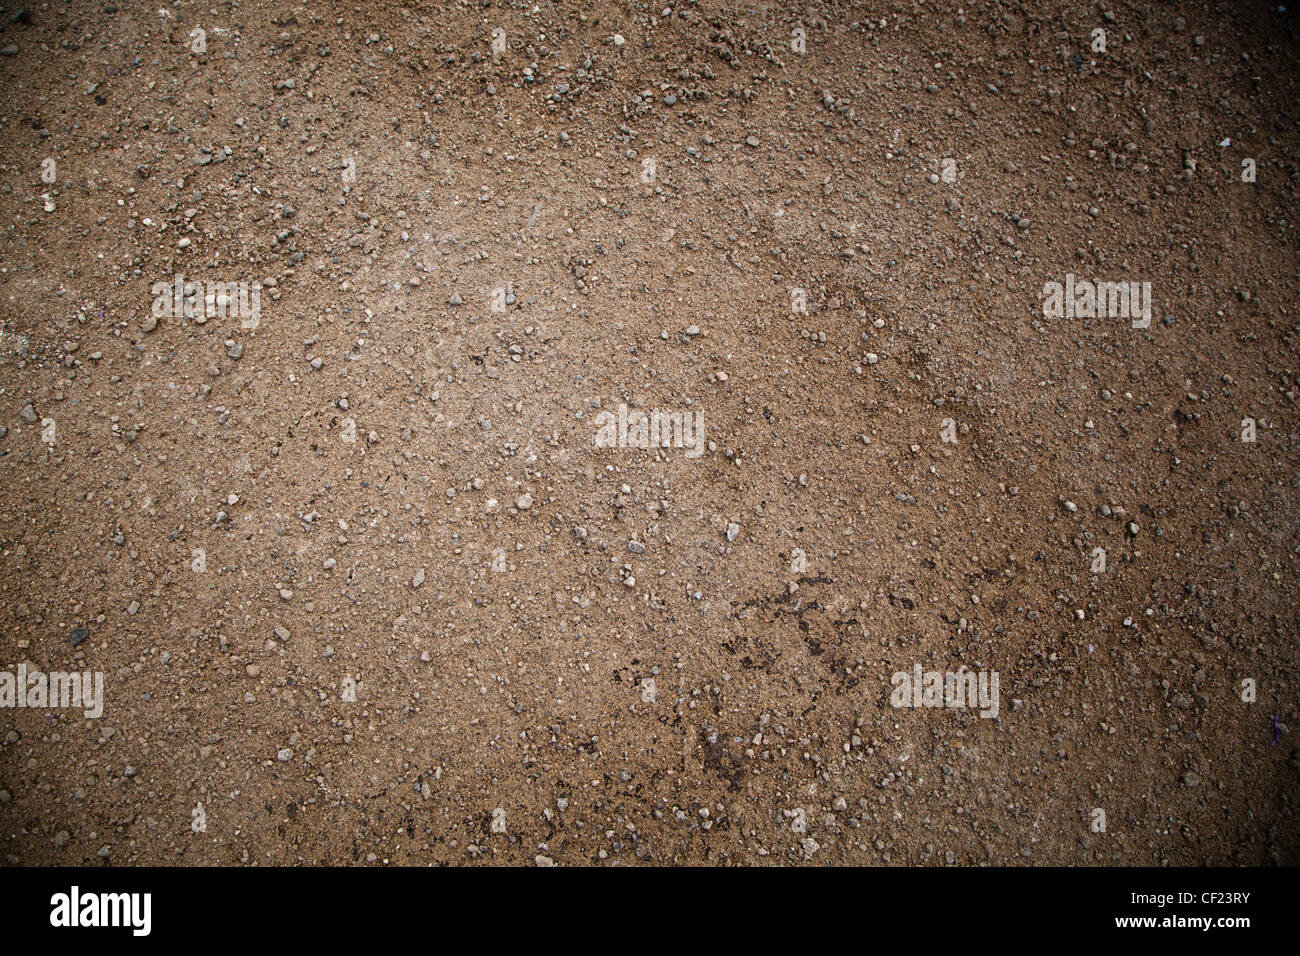 Dirty brown Sand Background with Nobody - Stock Image